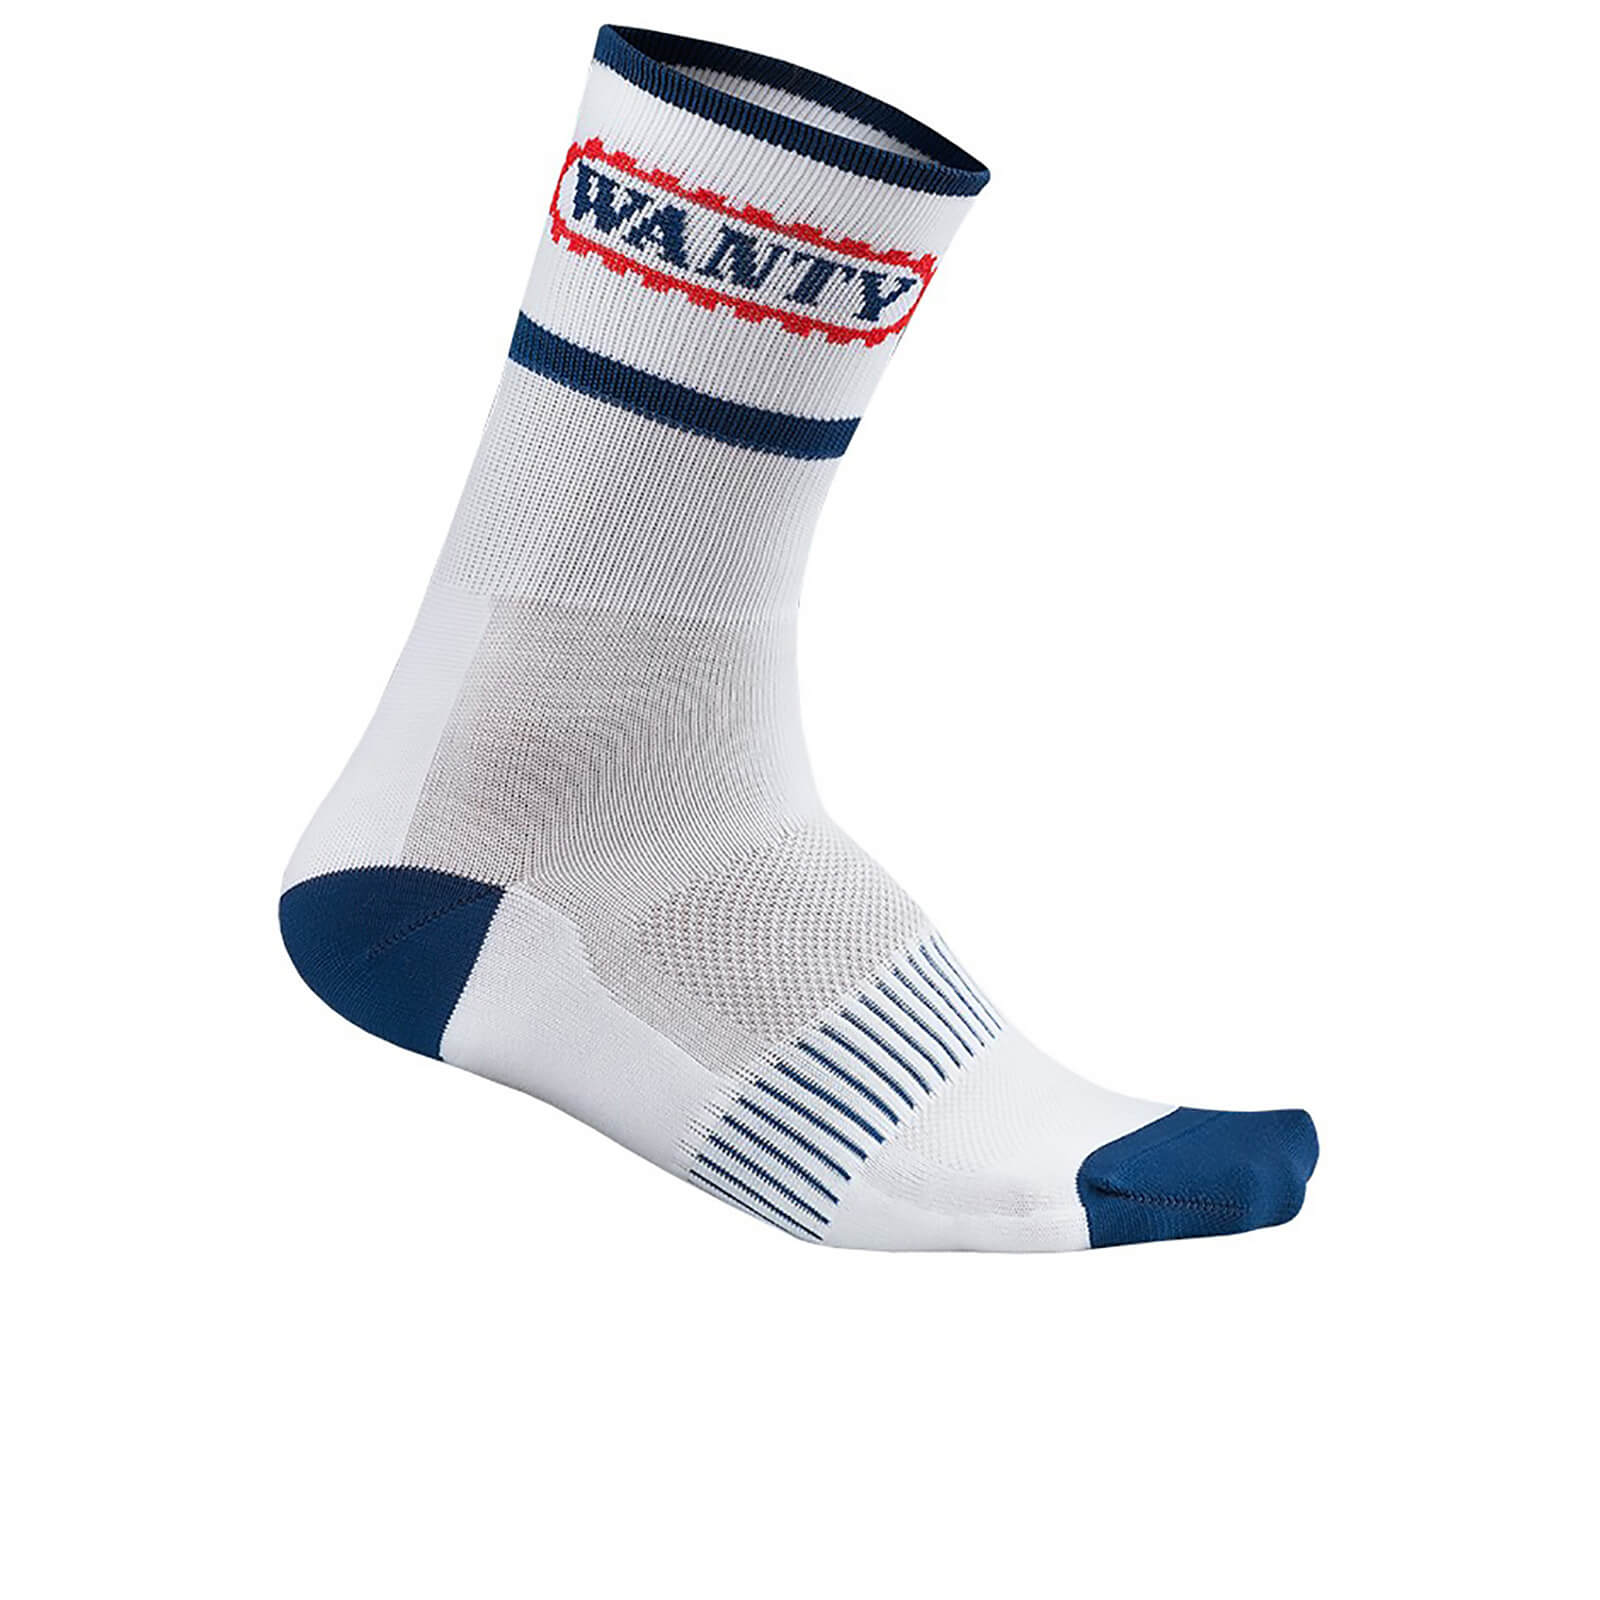 Kalas Wanty Groupe Gobert Replica Team Socks